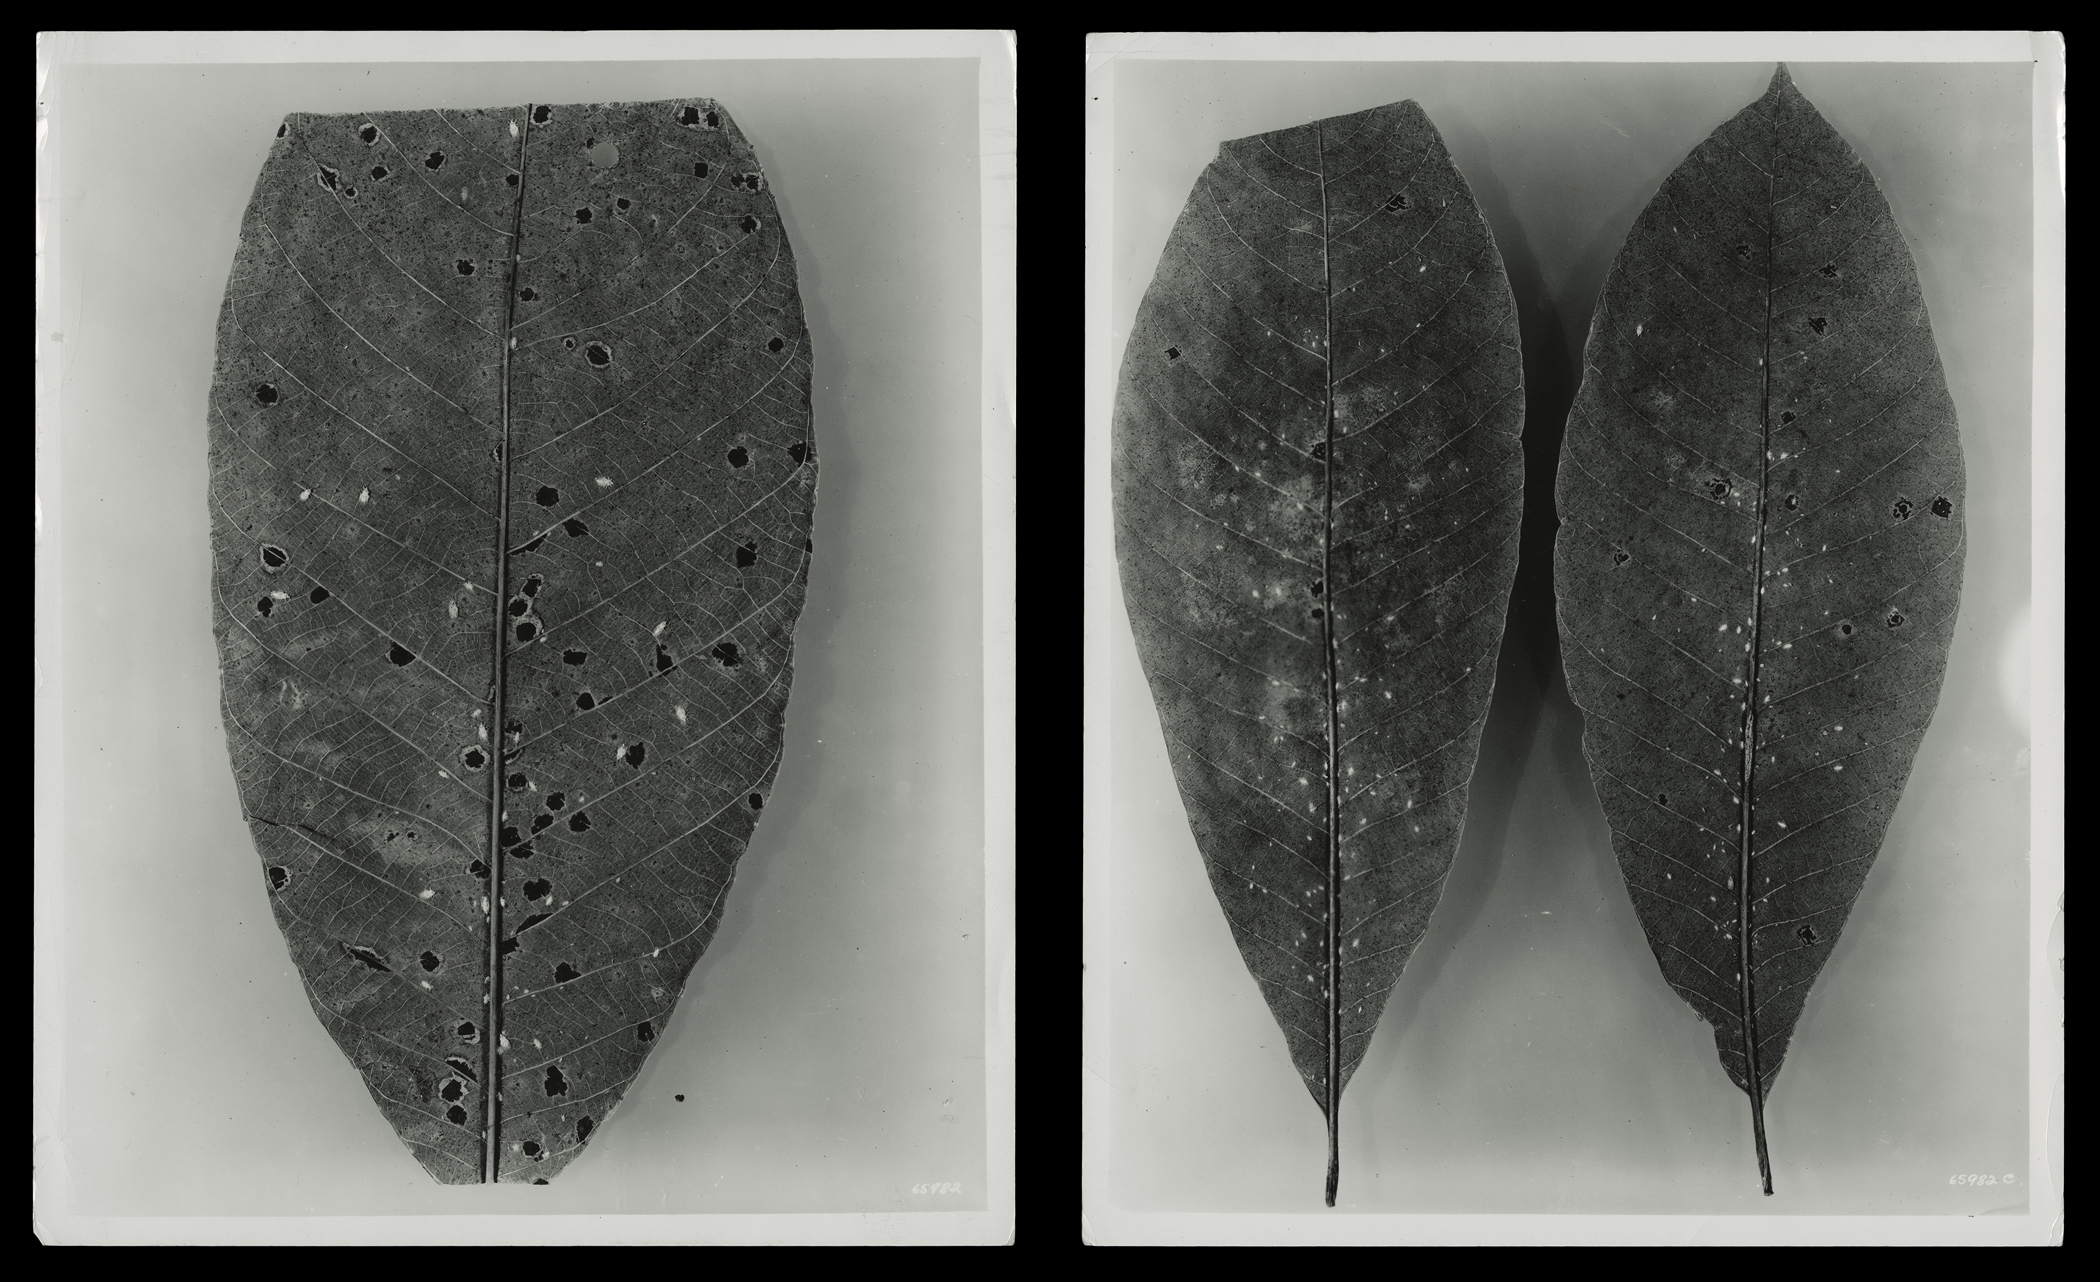 """(research image) """"Diseased Rubber Plant,"""" Fordlandia, Brazil, April 1936. (2) 8 x 10"""" gelatin silver fiber print. Creator: Companhia Ford Industrial Do Brasil Ford Motor Company. From the Collections of The Henry Ford"""